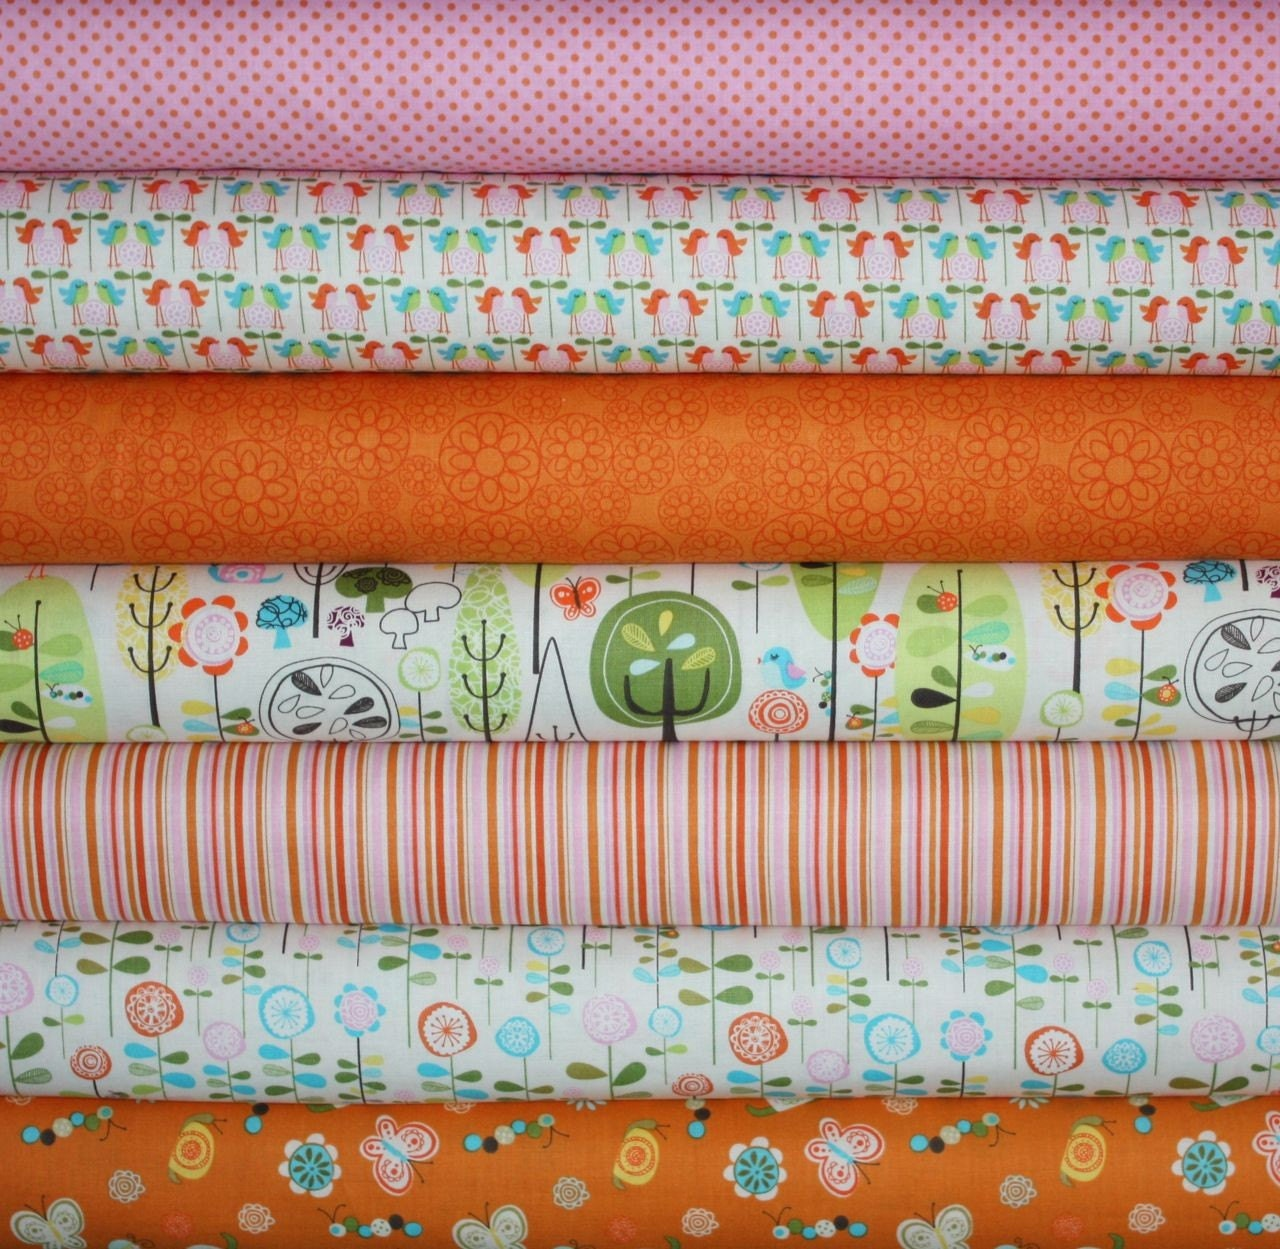 Happier Fabric by Deena Rutter for Riley Blake- Yard Bundle, 7 total